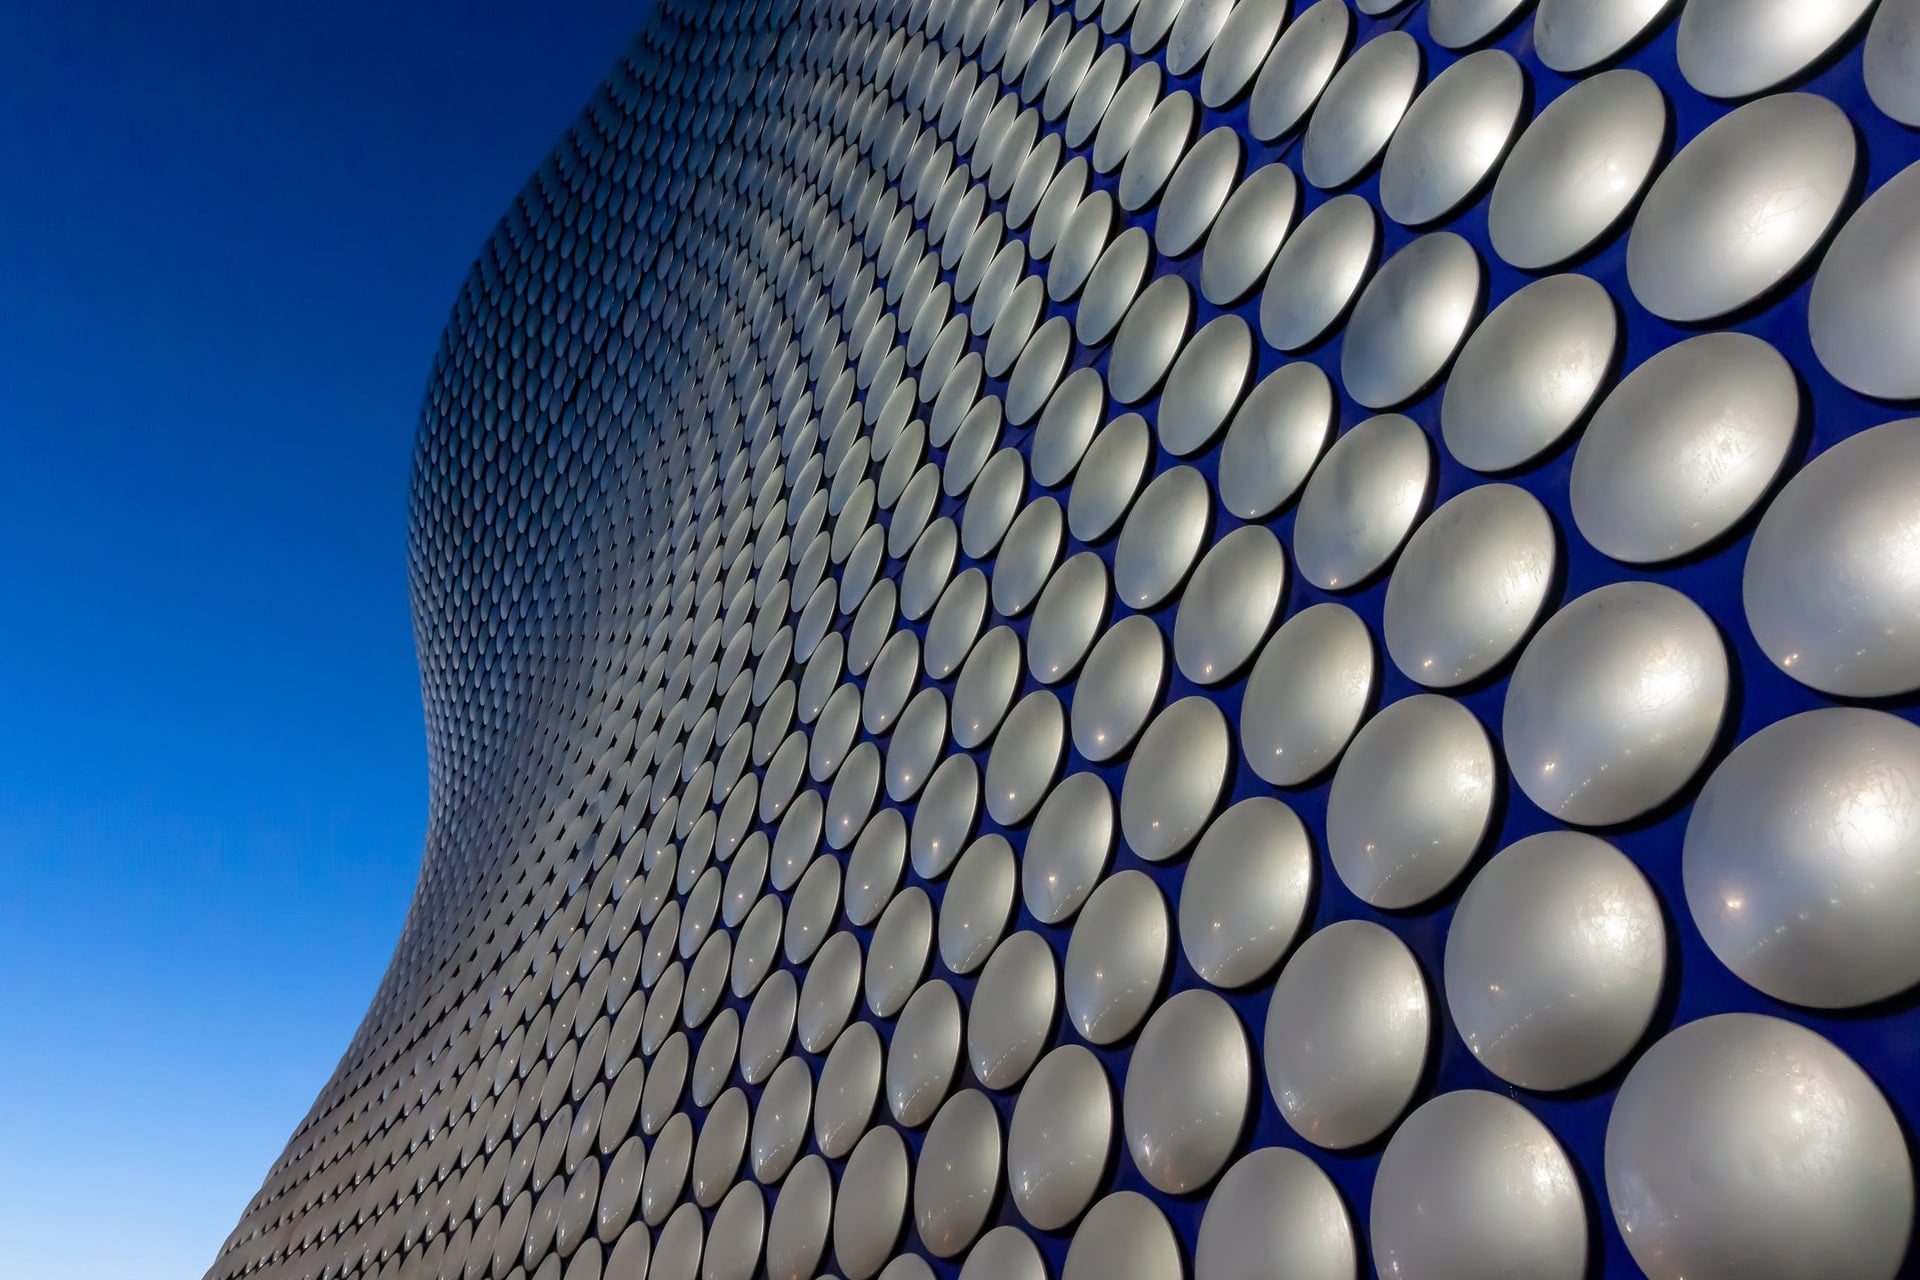 circular-exterior-of-the-bullring-shopping-centre-birmingham-against-blue-skies